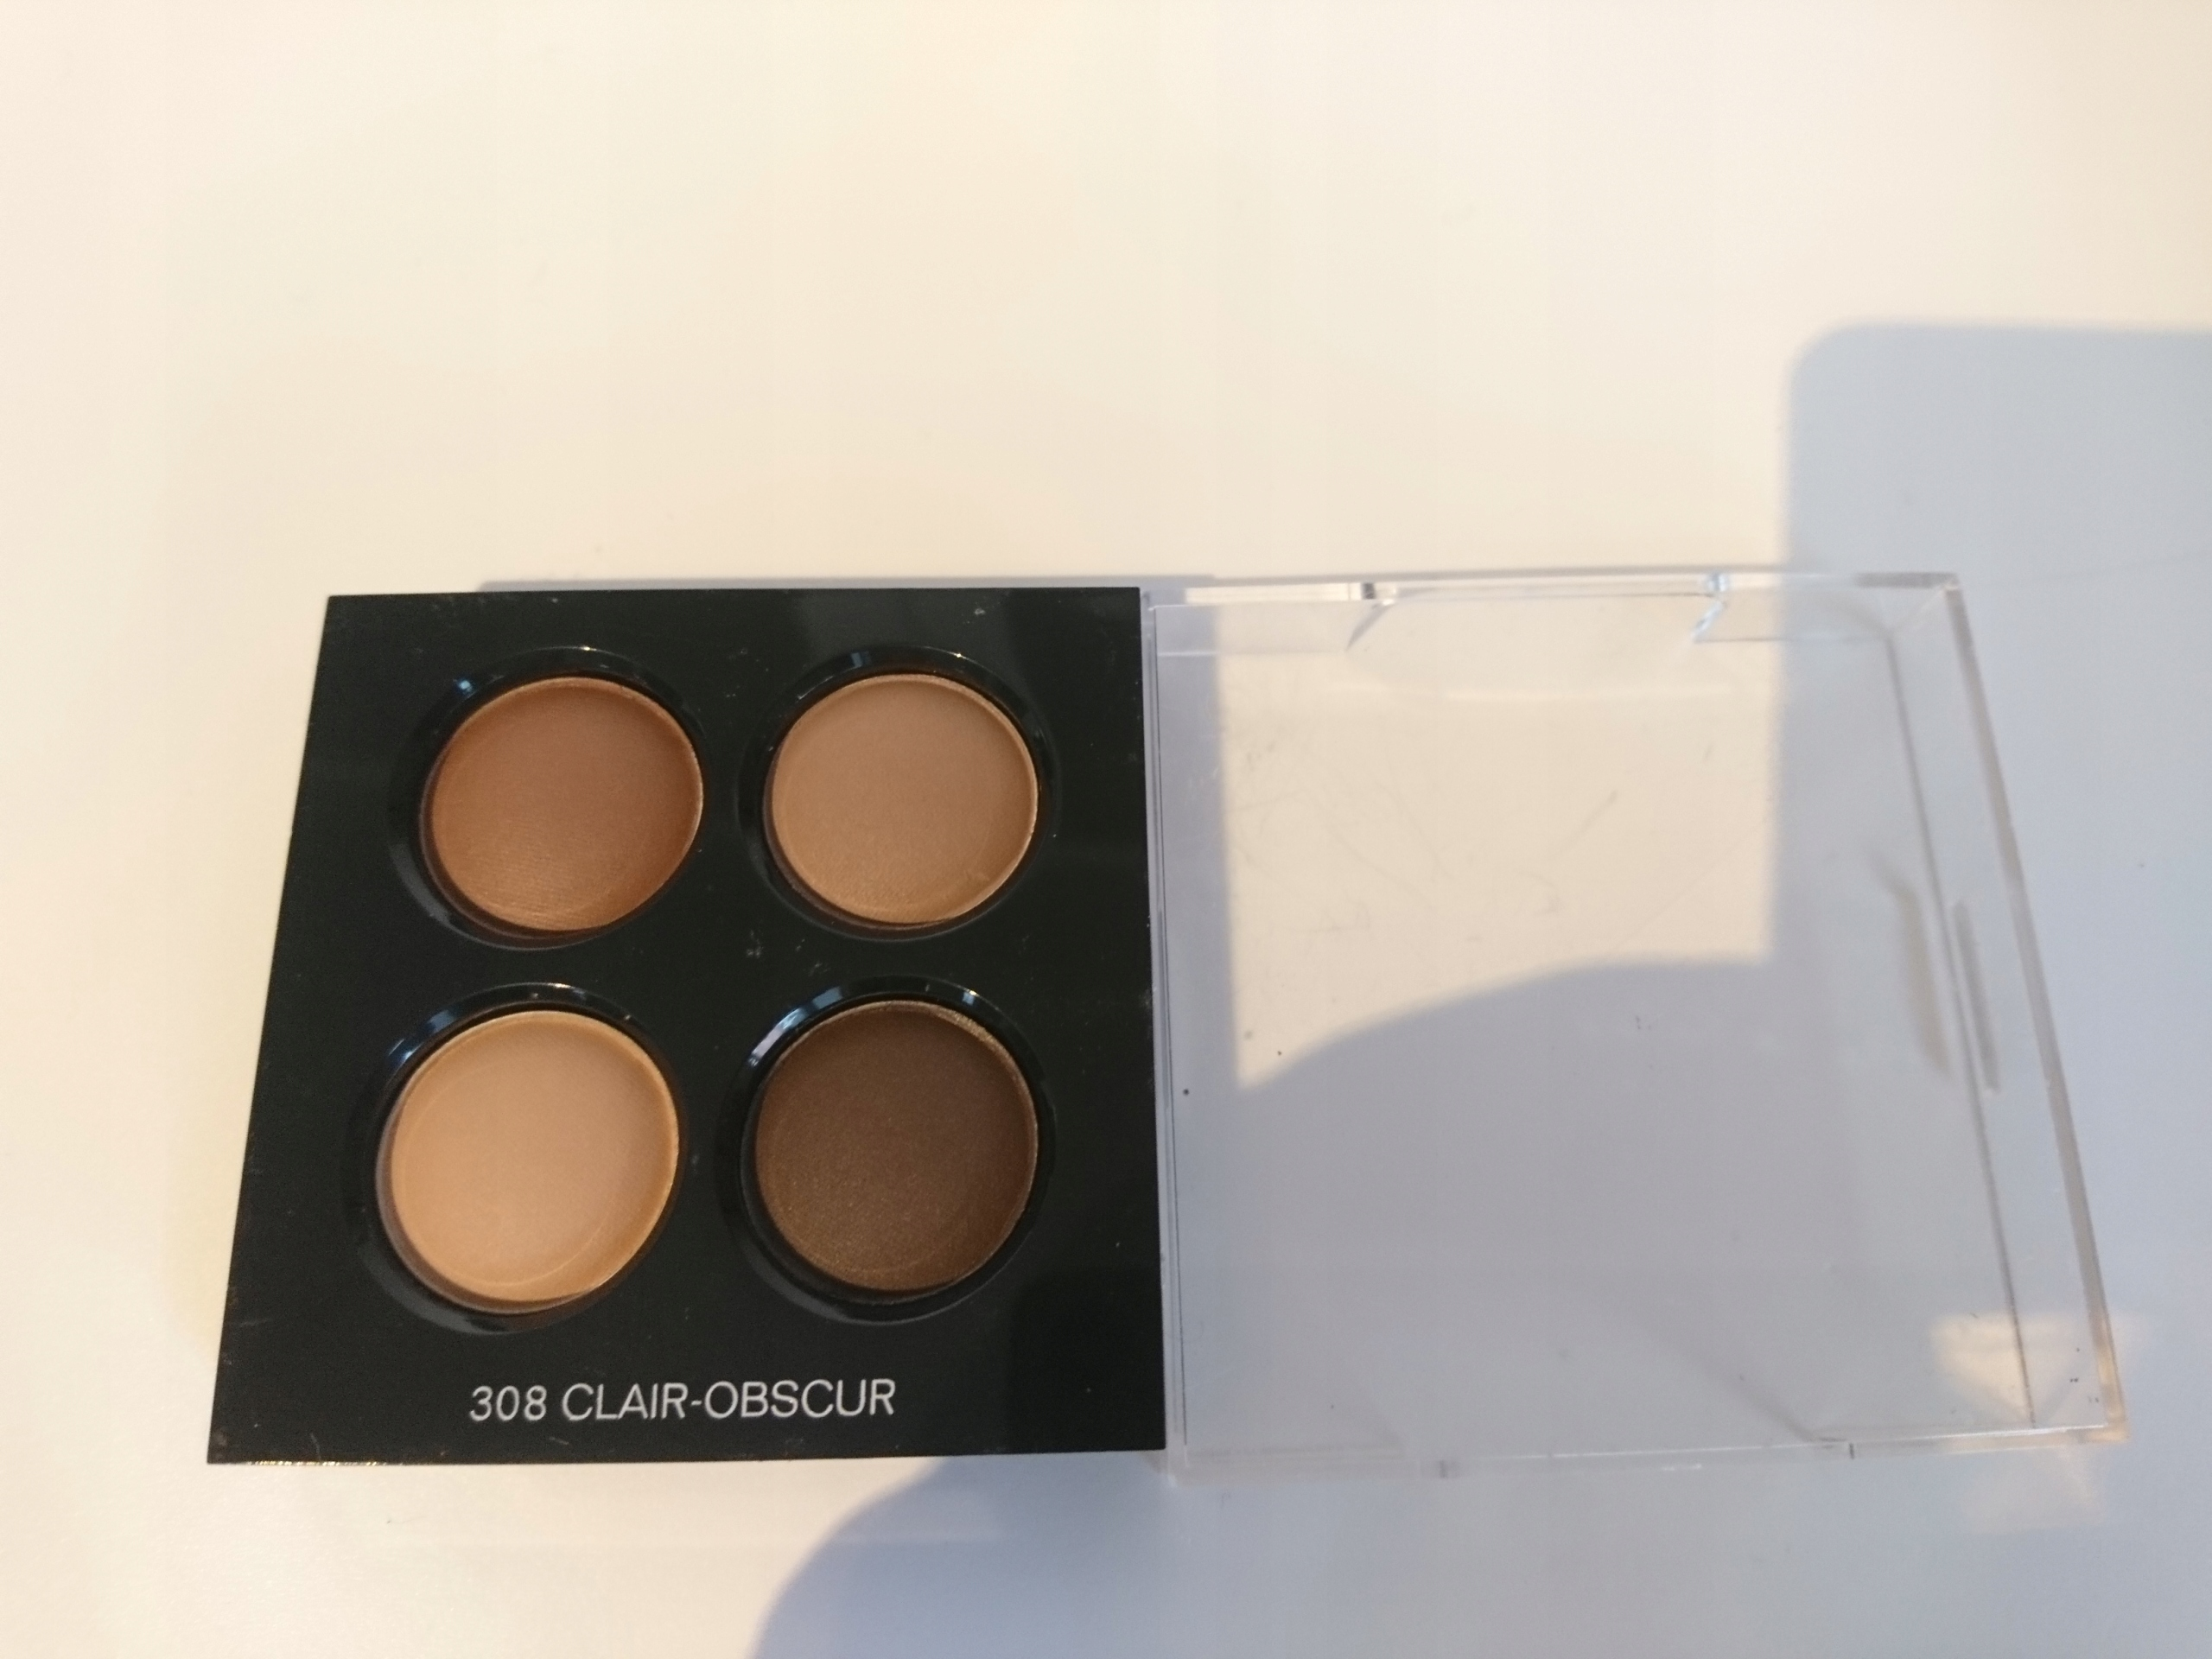 75086f42 Chanel Les 4 Ombres eyeshadow 308 Clair Obscur